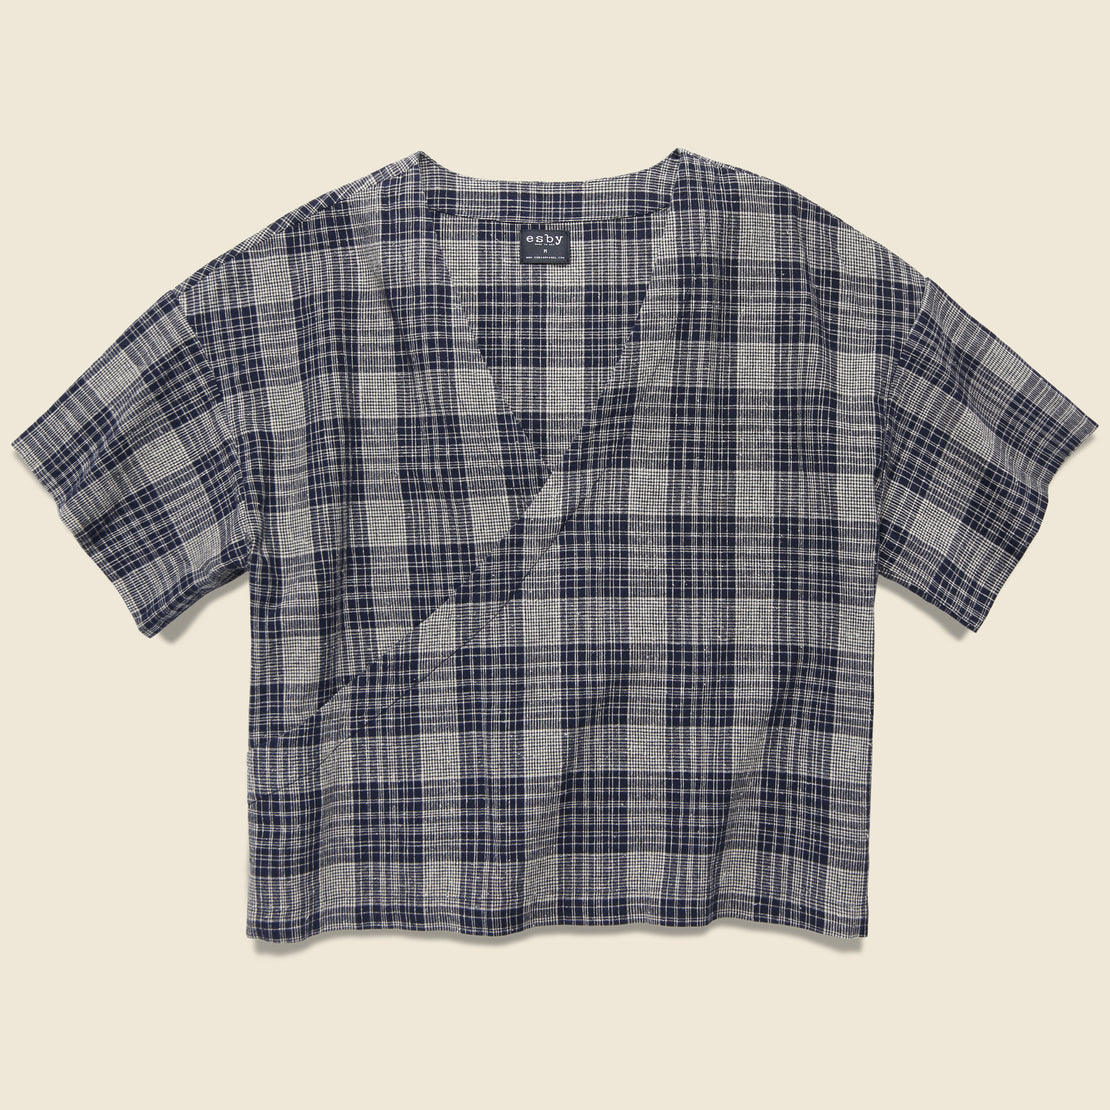 Esby Naomi Boxy Top - Navy/Natural Plaid